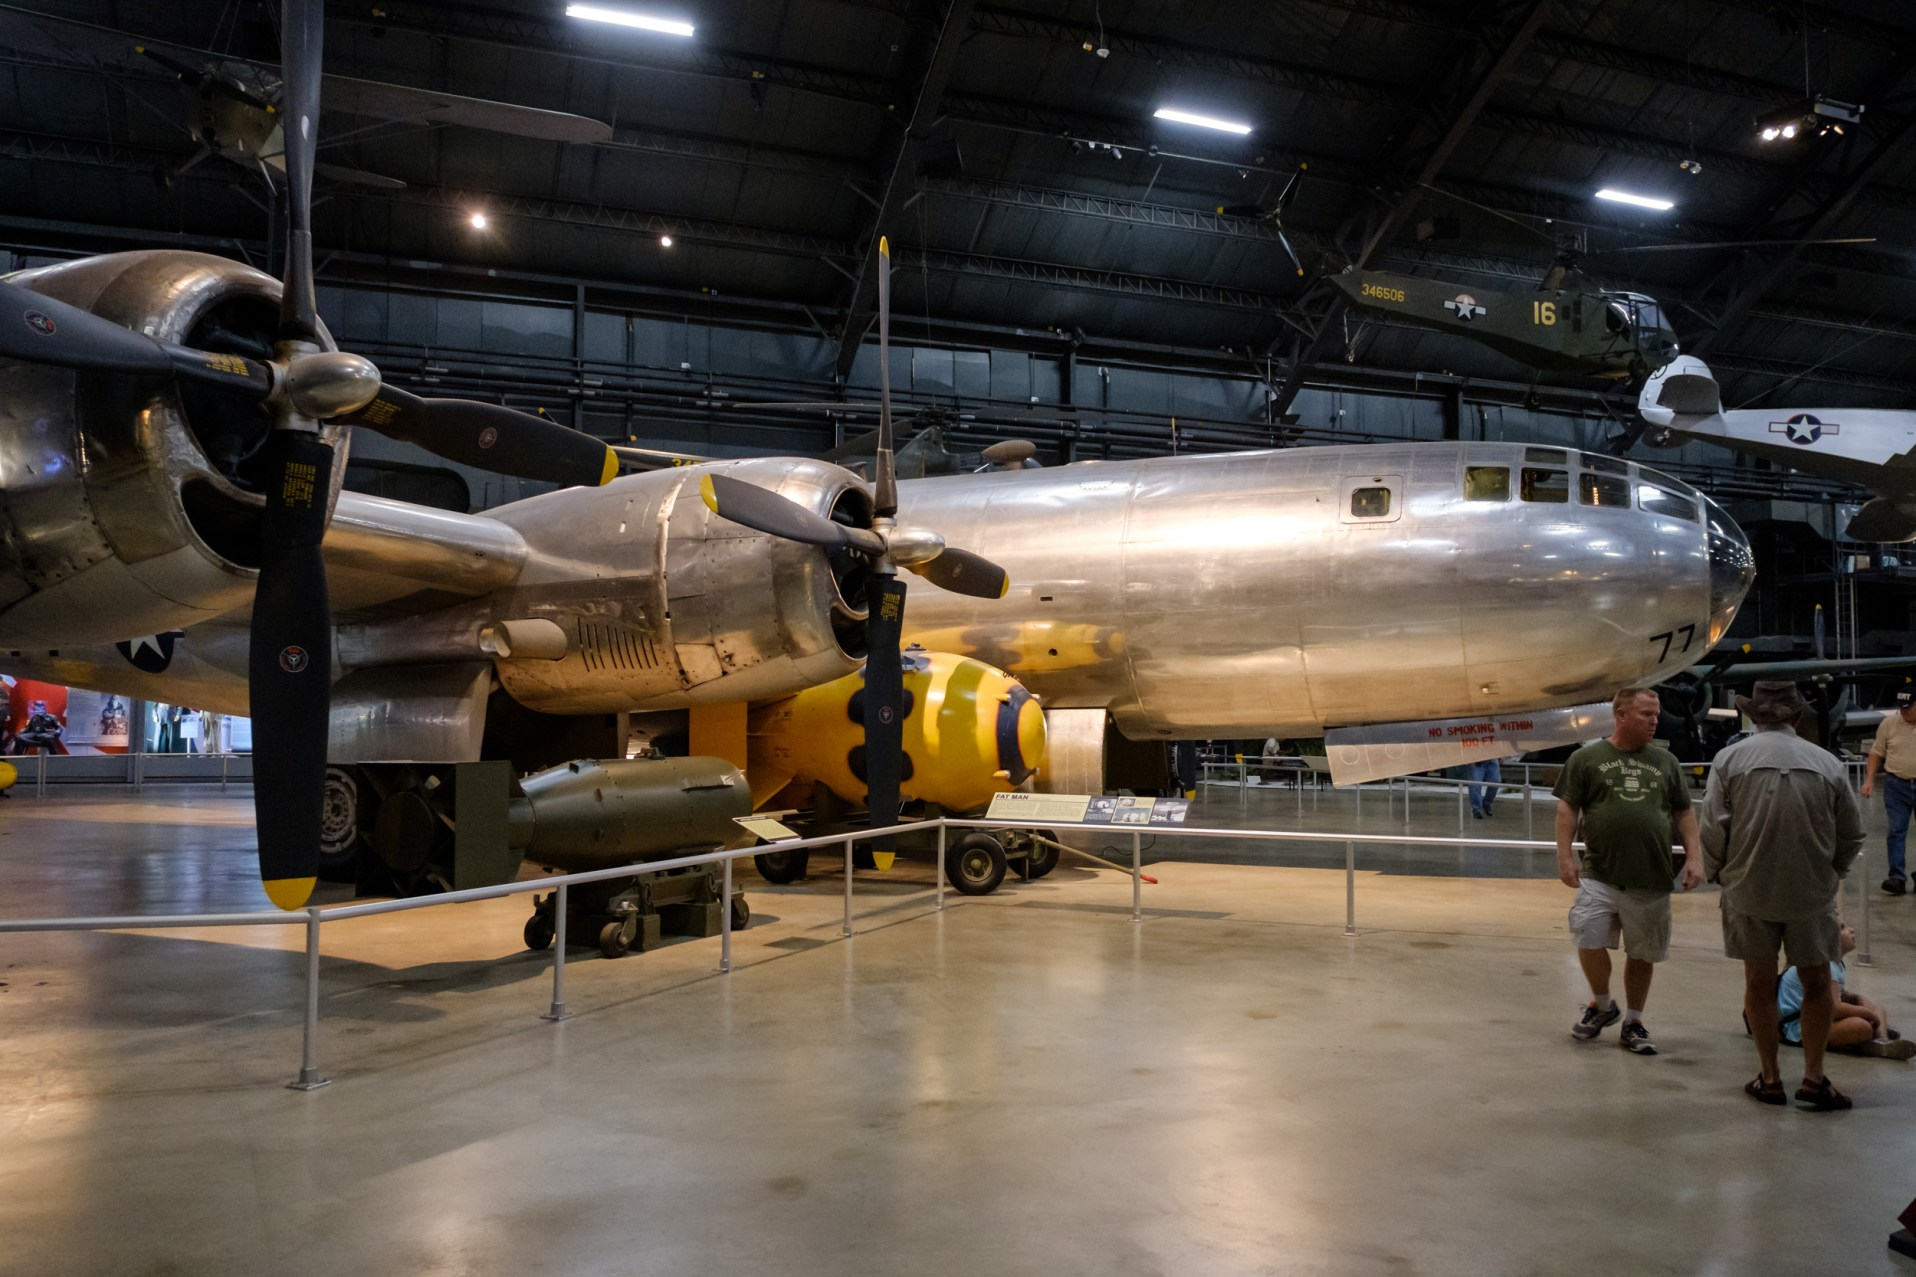 """Boeing B-29 Superfortress """"Bockscar"""" with Fat Man Atomic Bomb, at the National Museum of the US Air Force."""